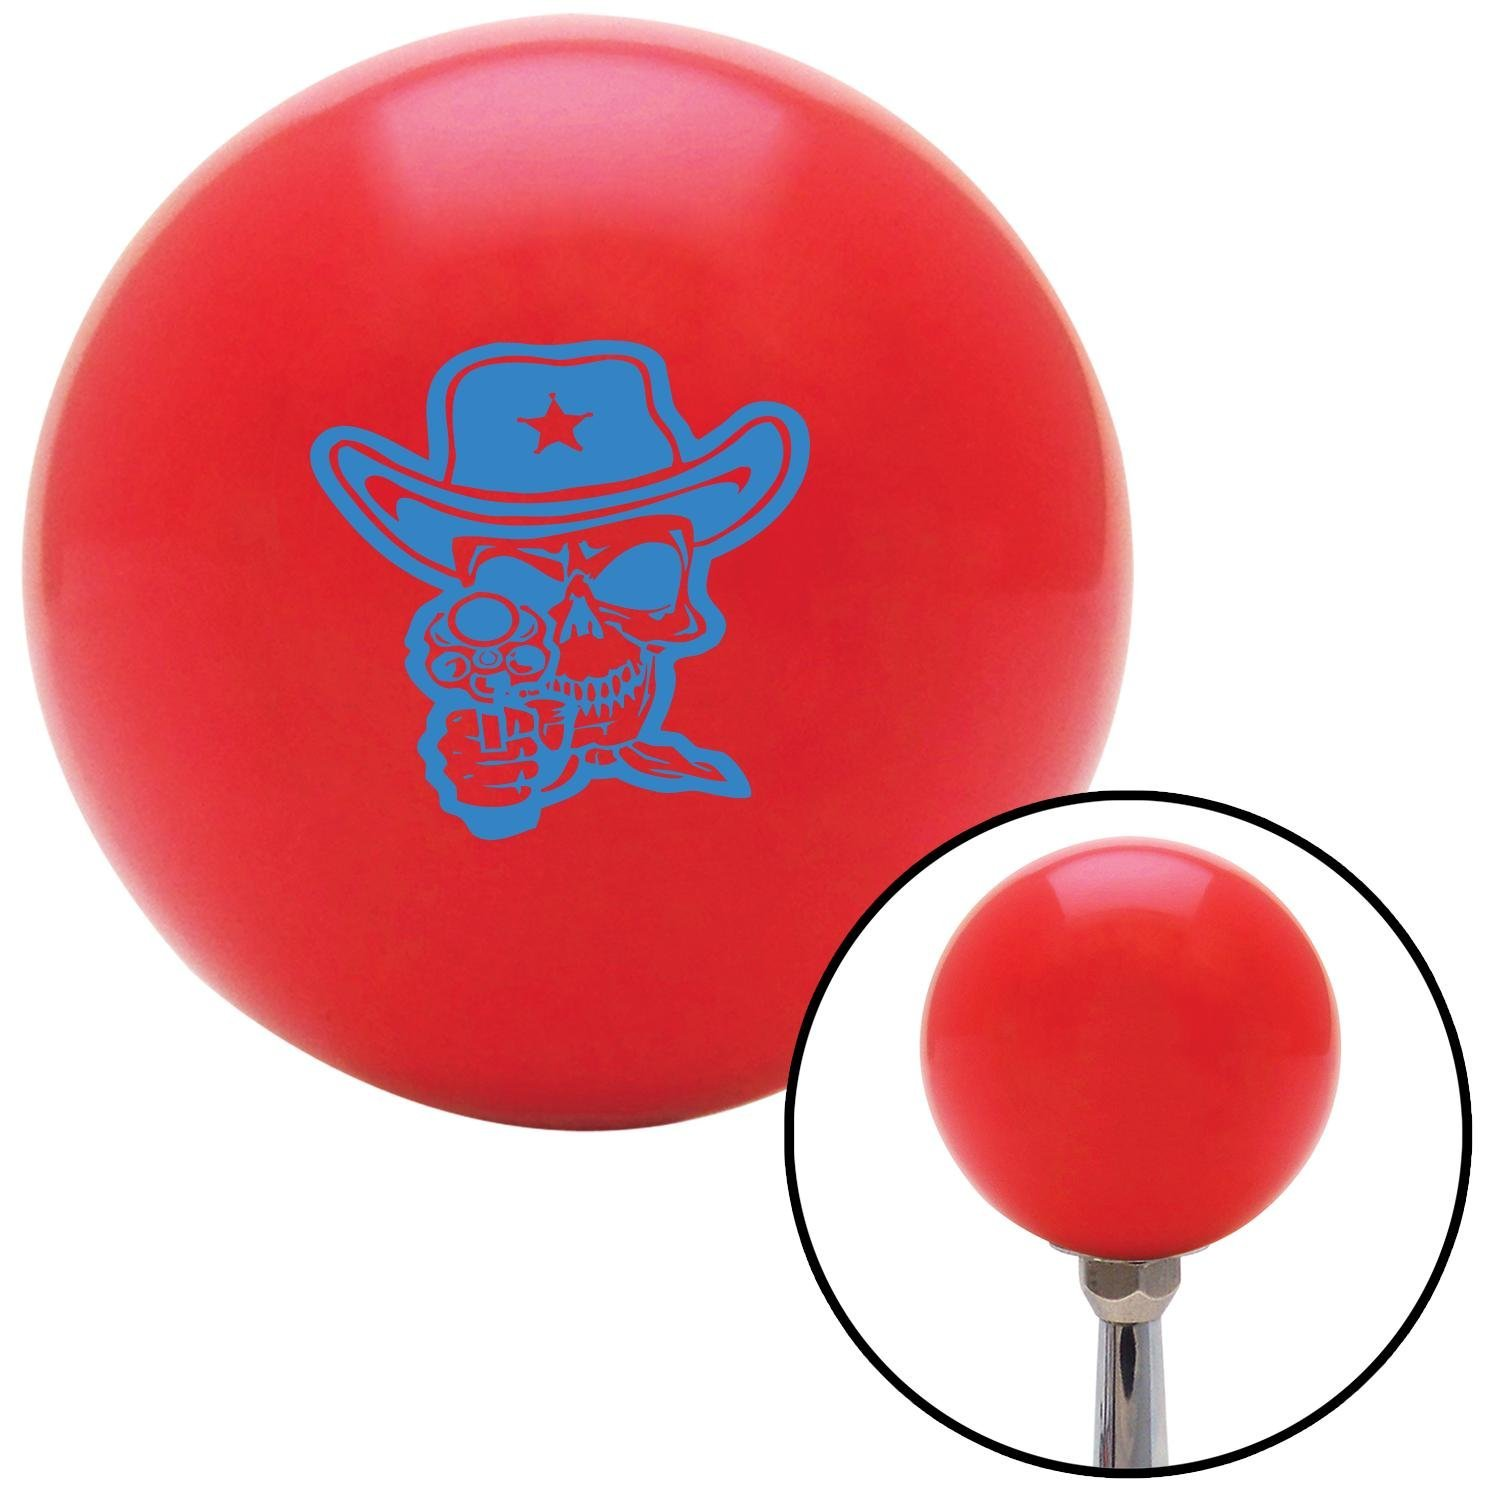 American Shifter 100773 Red Shift Knob with M16 x 1.5 Insert Blue Cowboy Skull